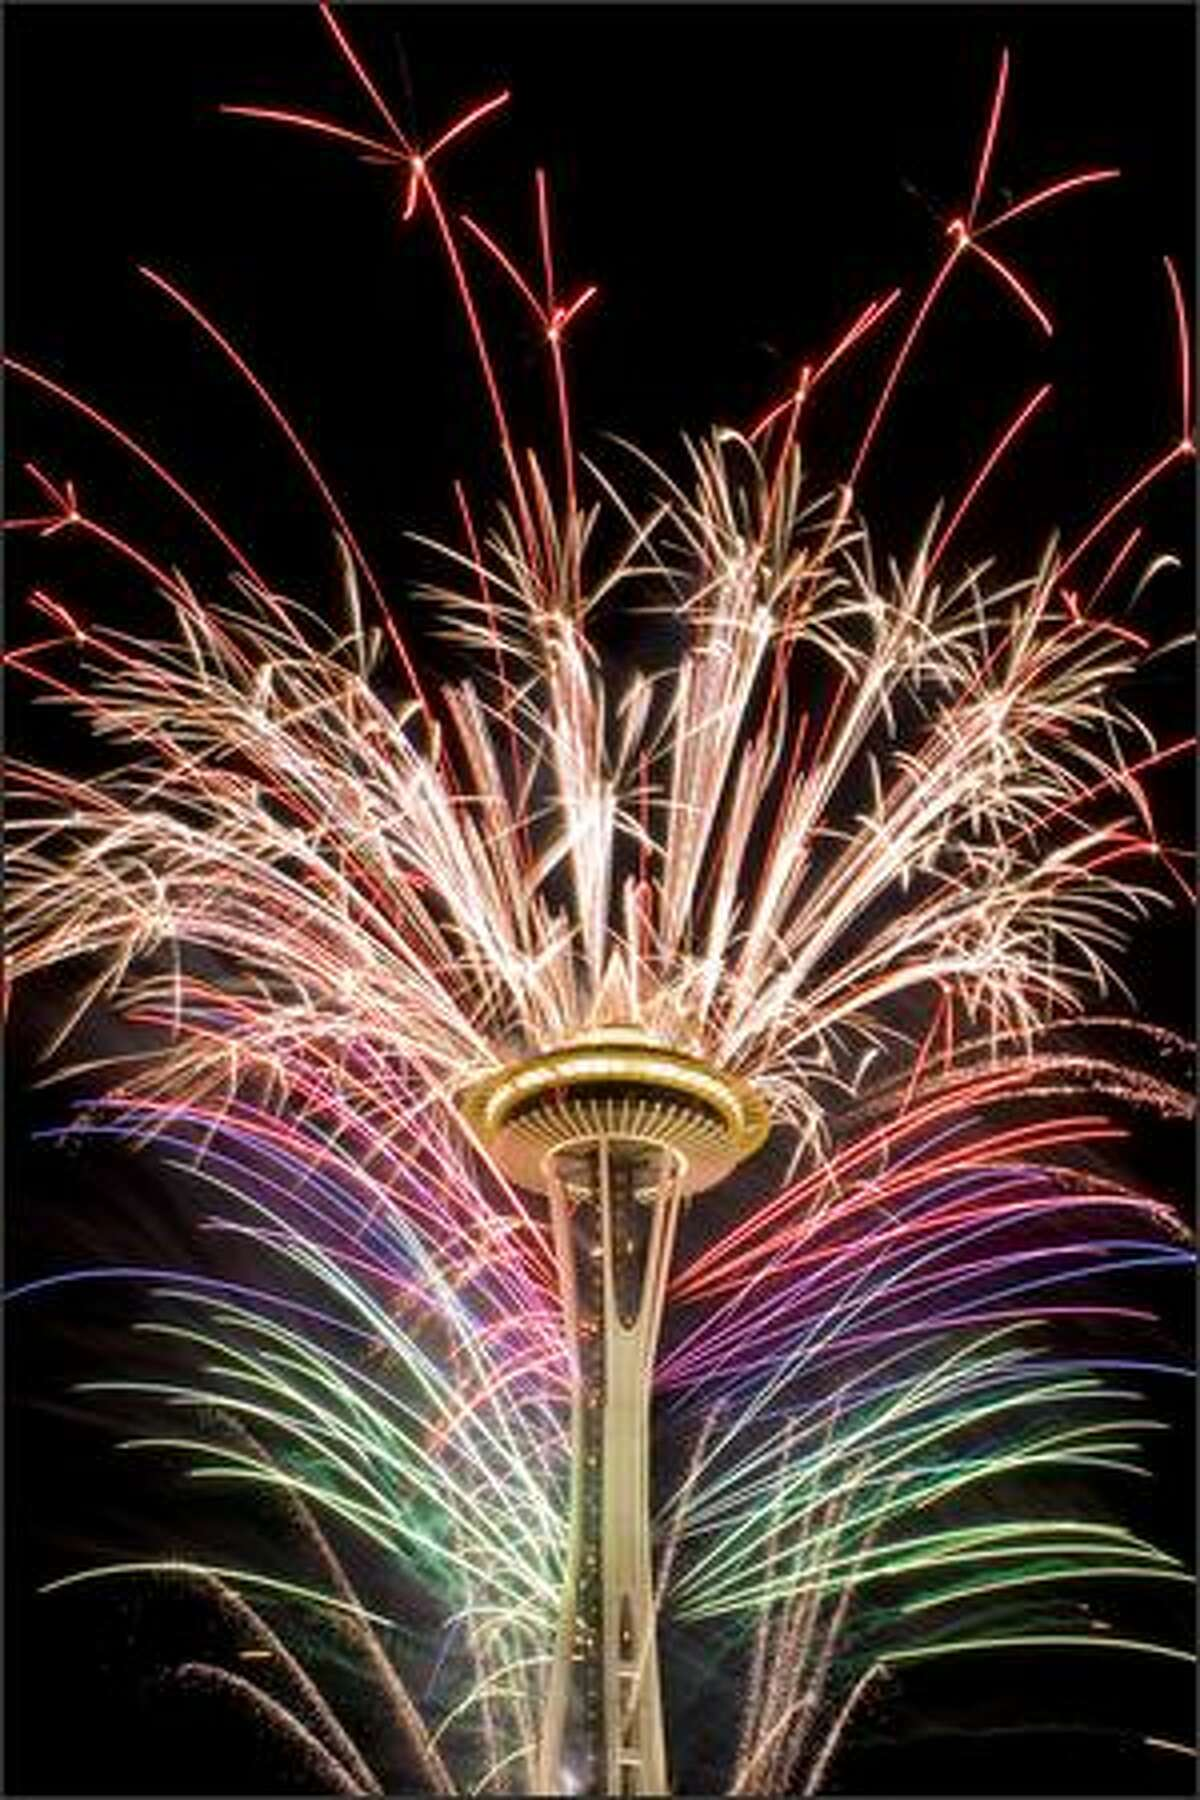 Photographer : See more by ChrisB Editor's comment: This is probably one of the best fireworks pictures taken from this point of view of the Space Needle.